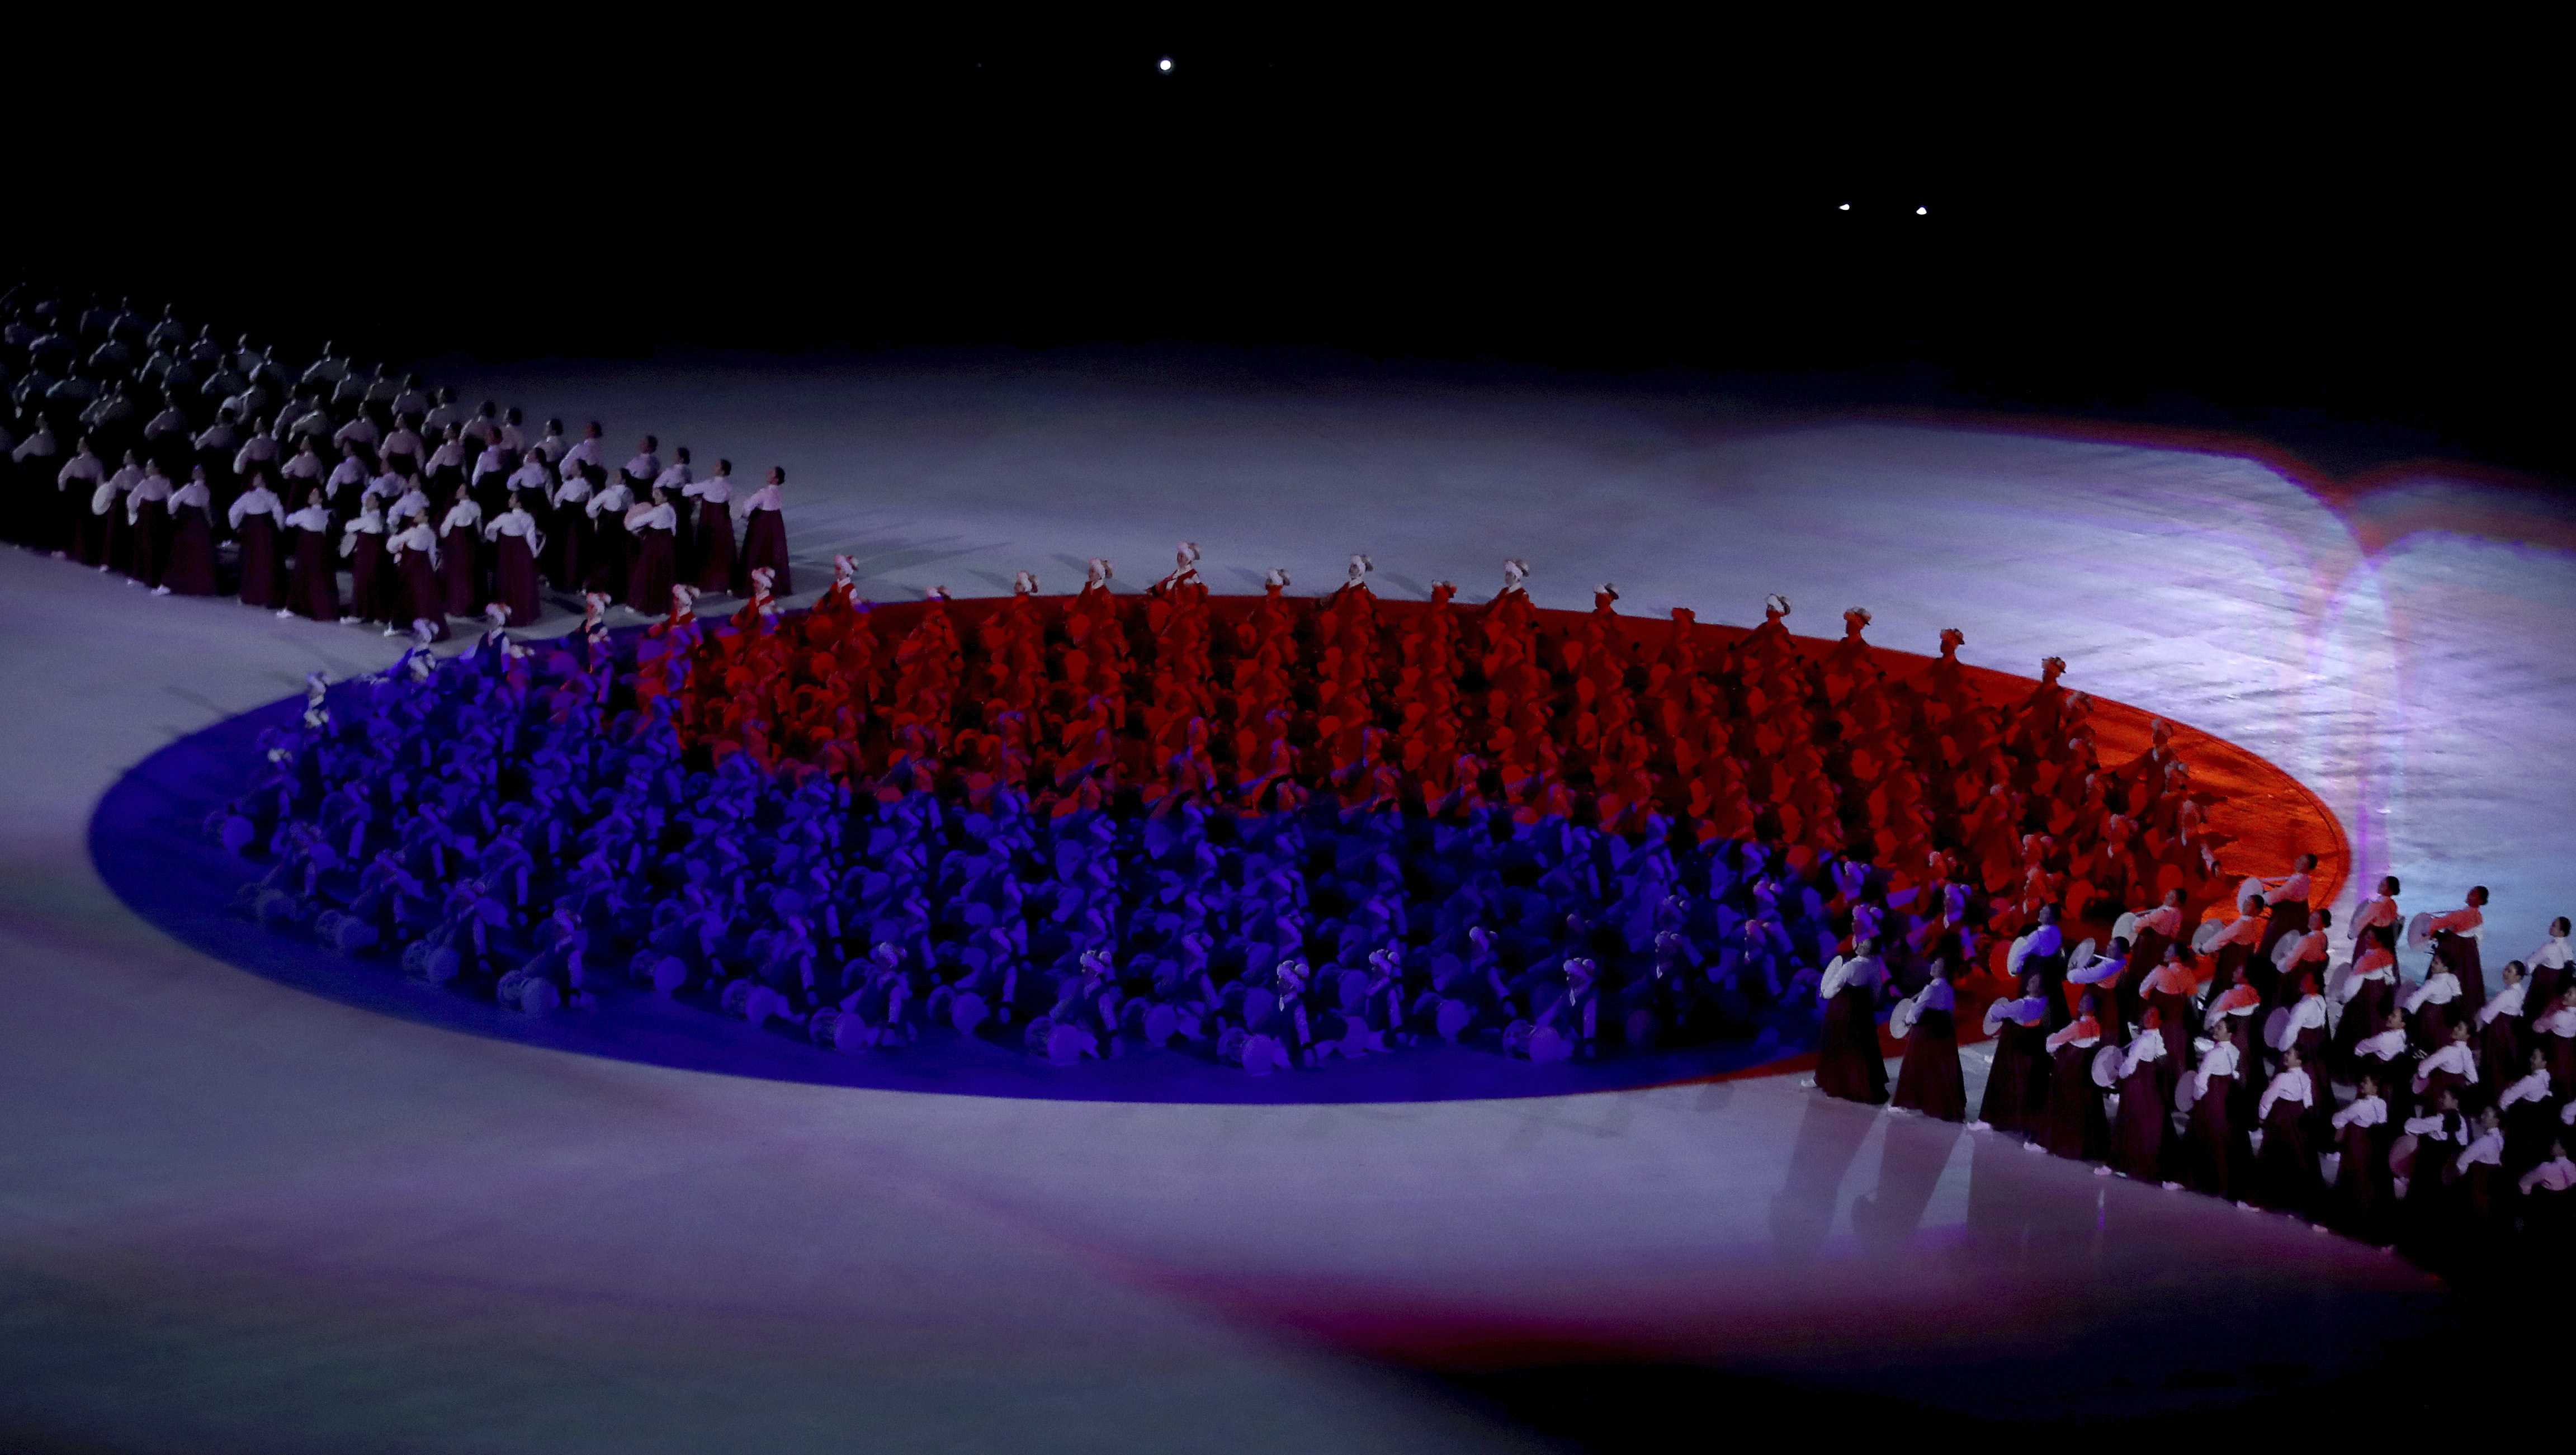 Even on a brutally cold February evening, there were moments aplenty to warm the heart during a Winter Olympics opening ceremony which had peace as its central theme.